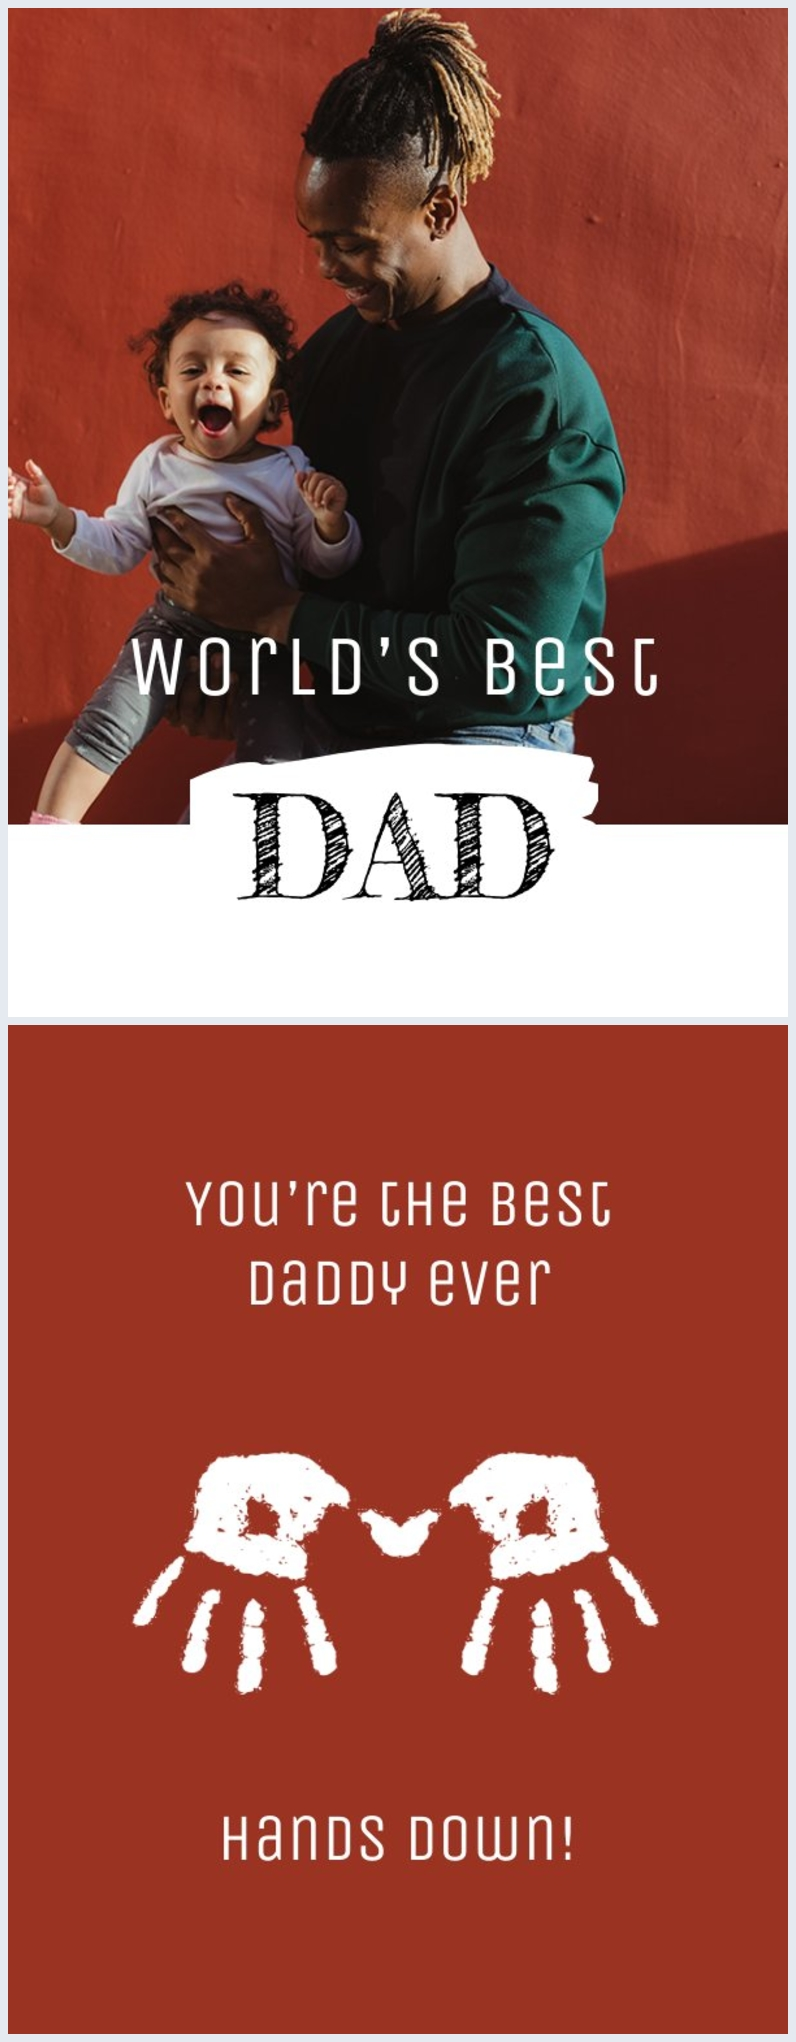 Free customizable Father's Day card template